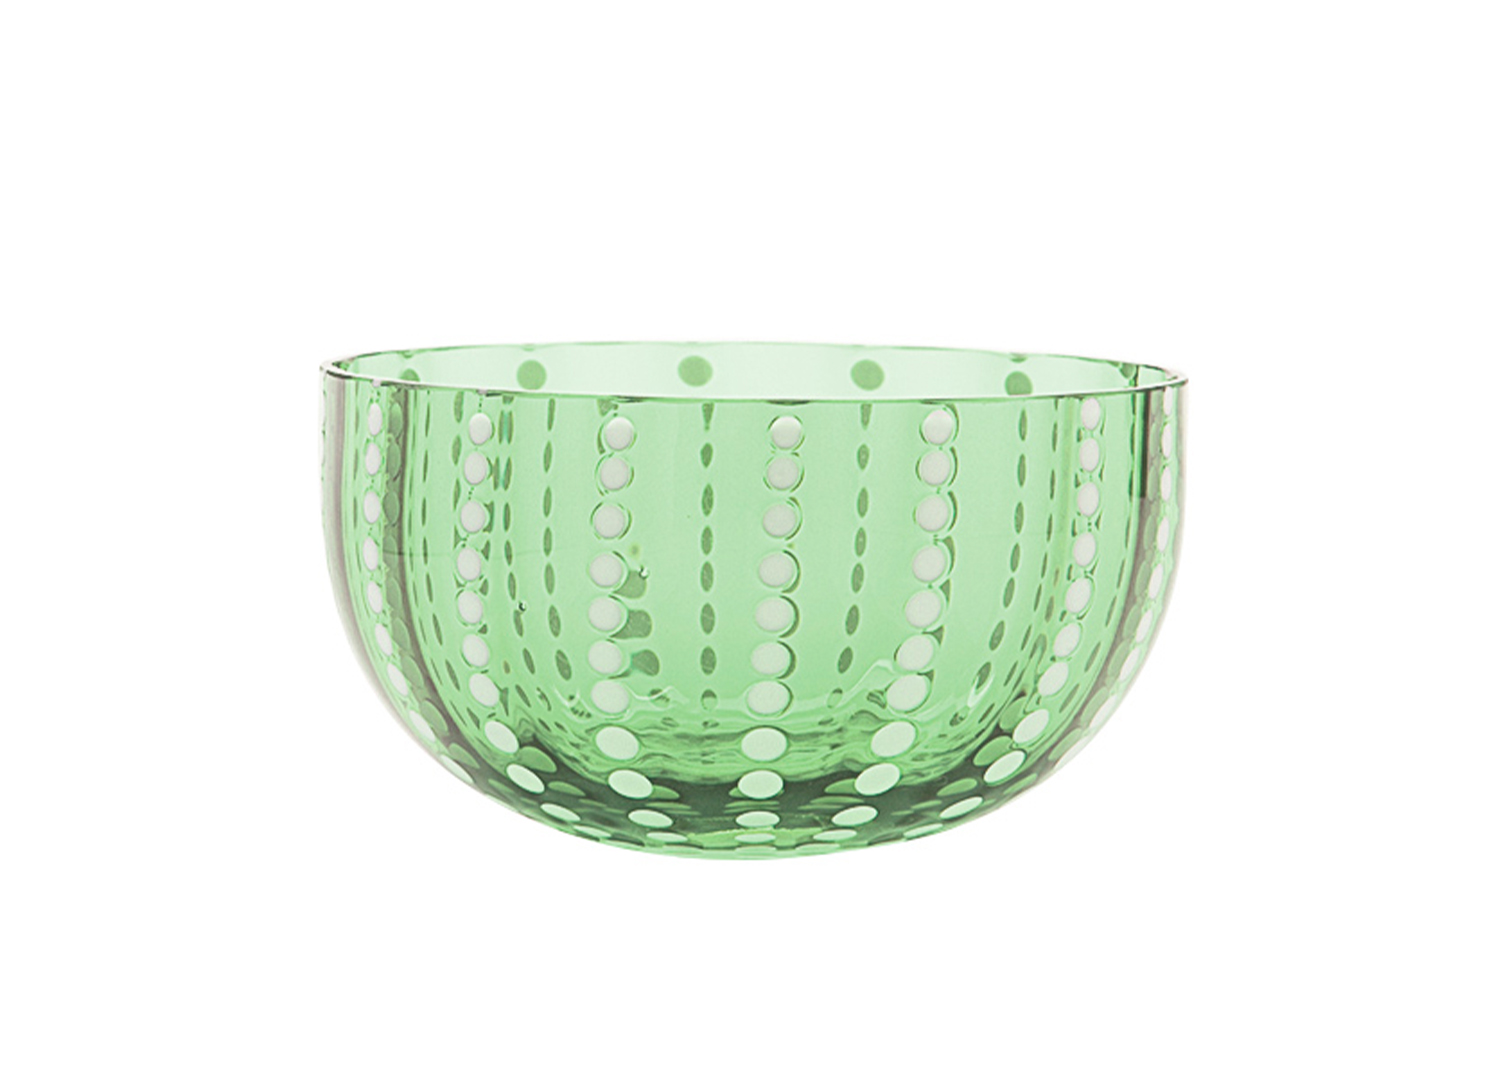 Land of Belle Green Perle Bowl